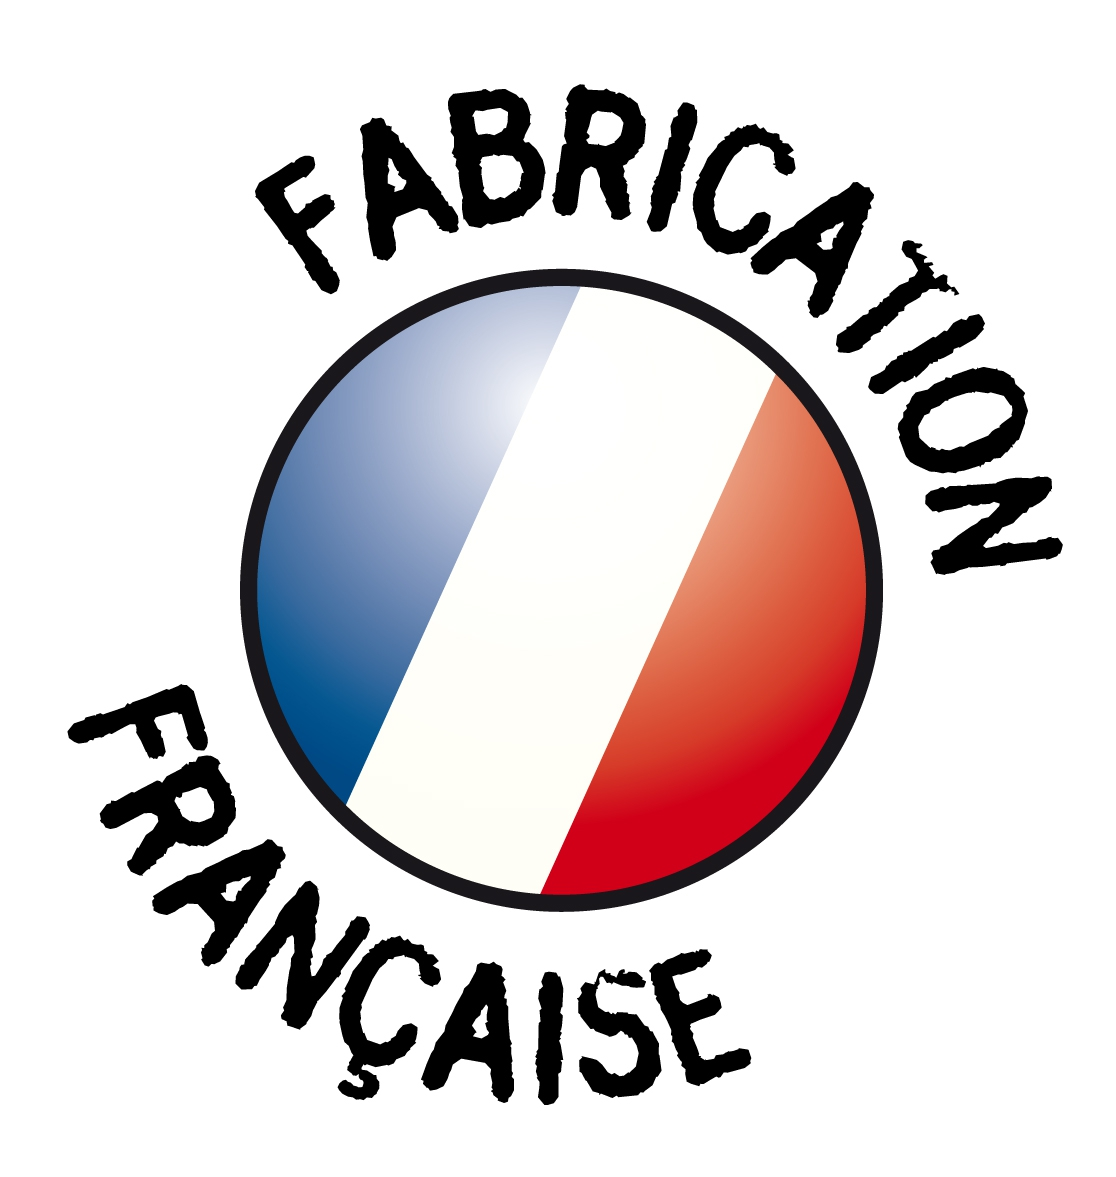 logo-fabrication-francaise.jpg